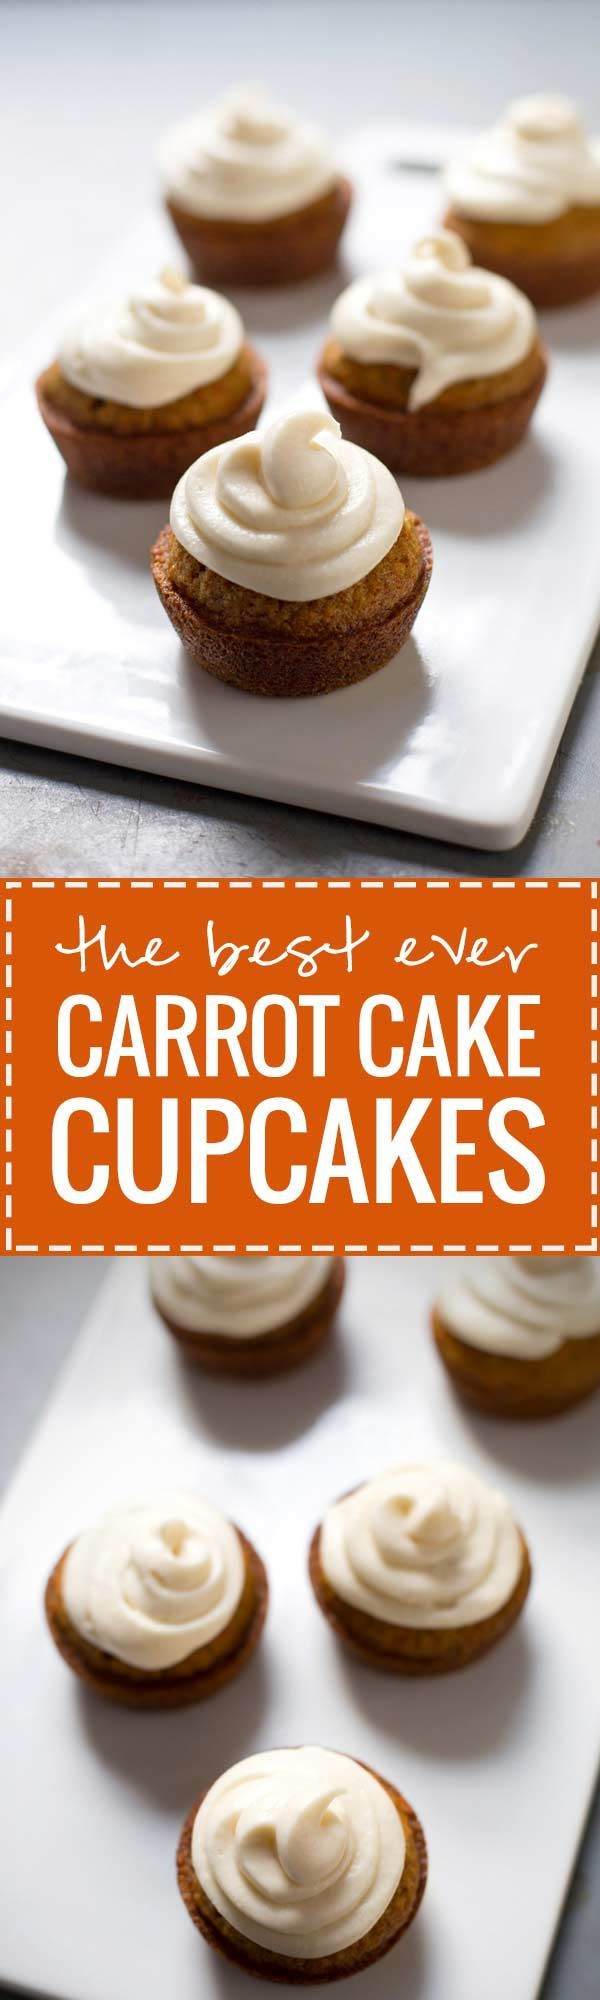 The Best Carrot Cake Cupcakes with Cream Cheese Frosting